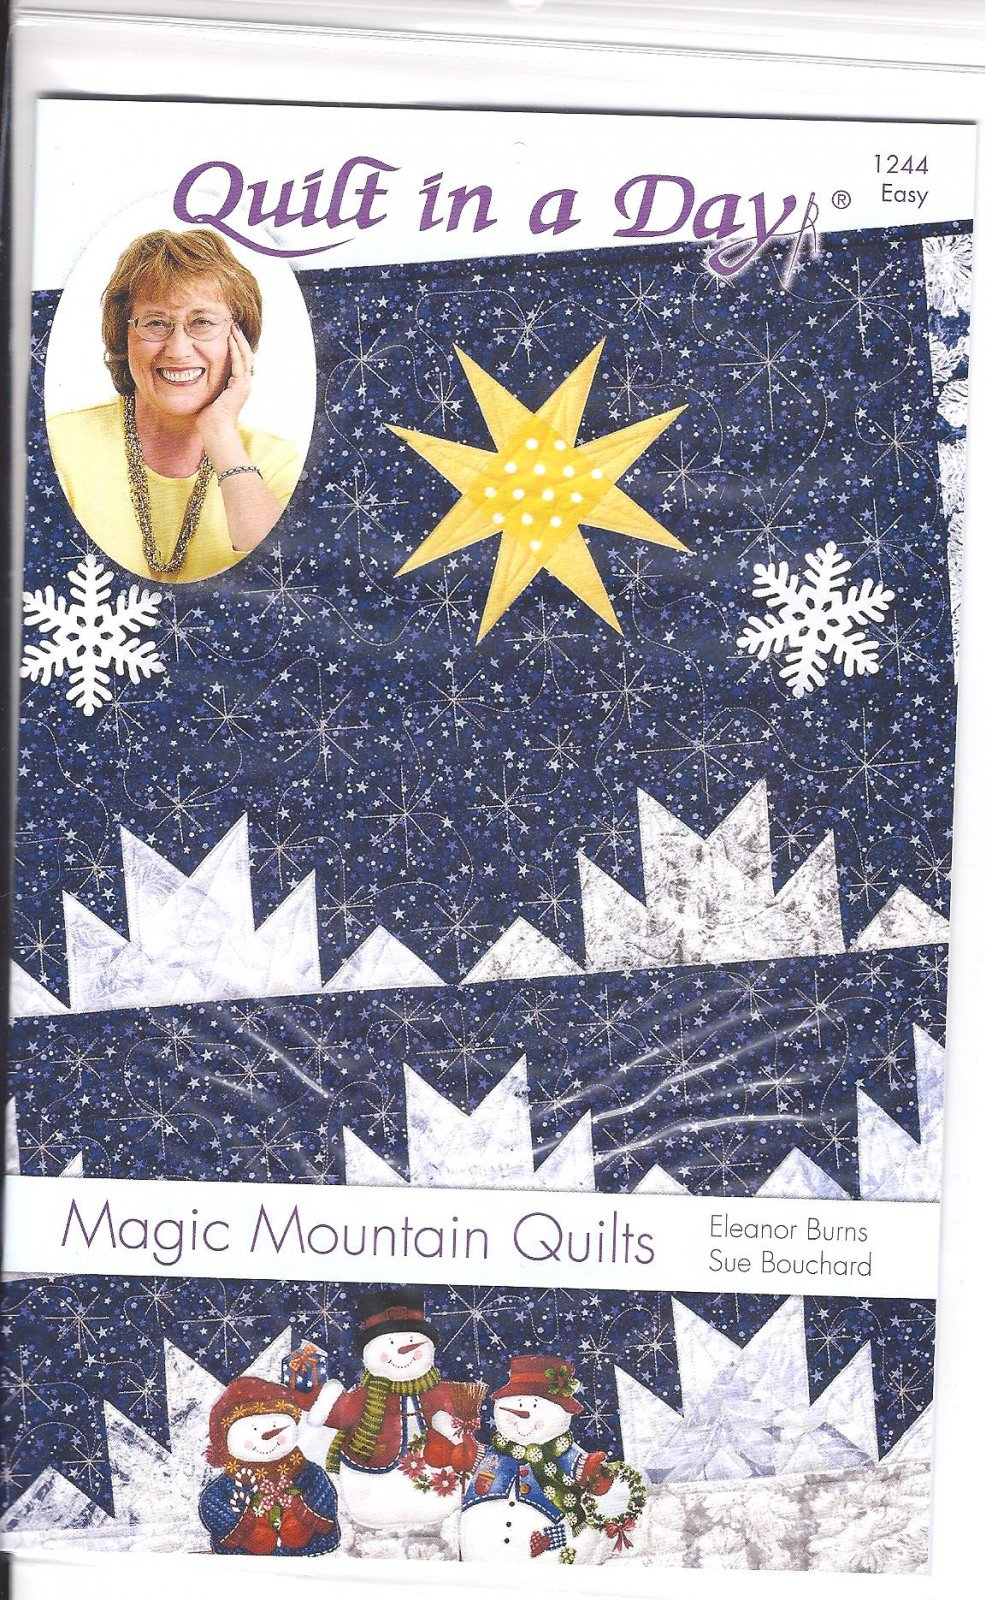 Magic Mountain Quilts Pattern by Quilt In A Day 1244 Easy